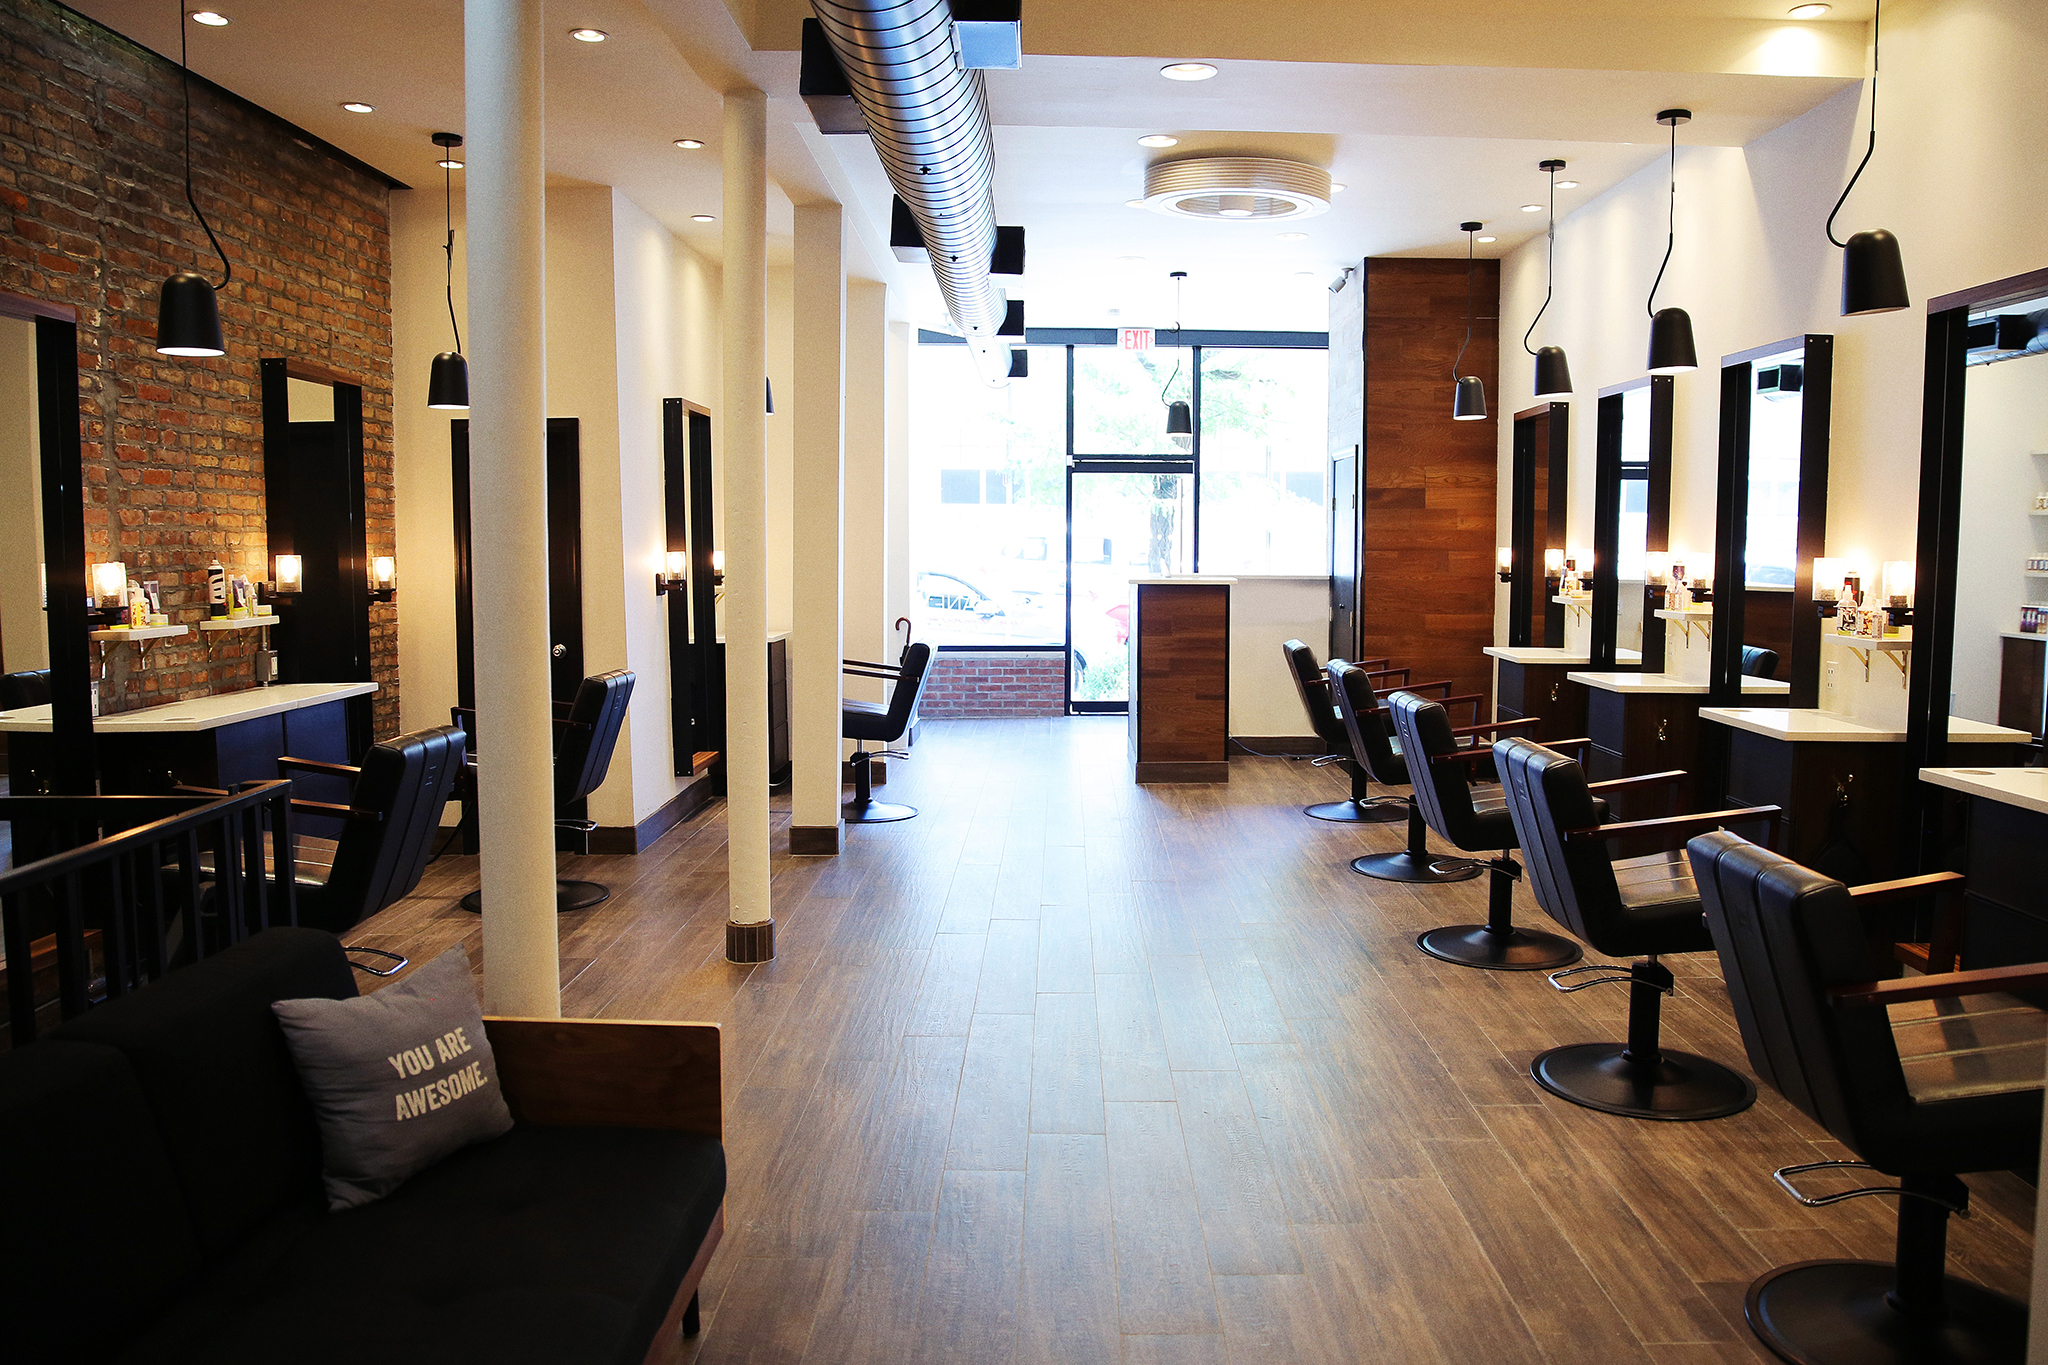 Salon Best Hair Salons Nyc Has To Offer For Cuts And Color Treatments